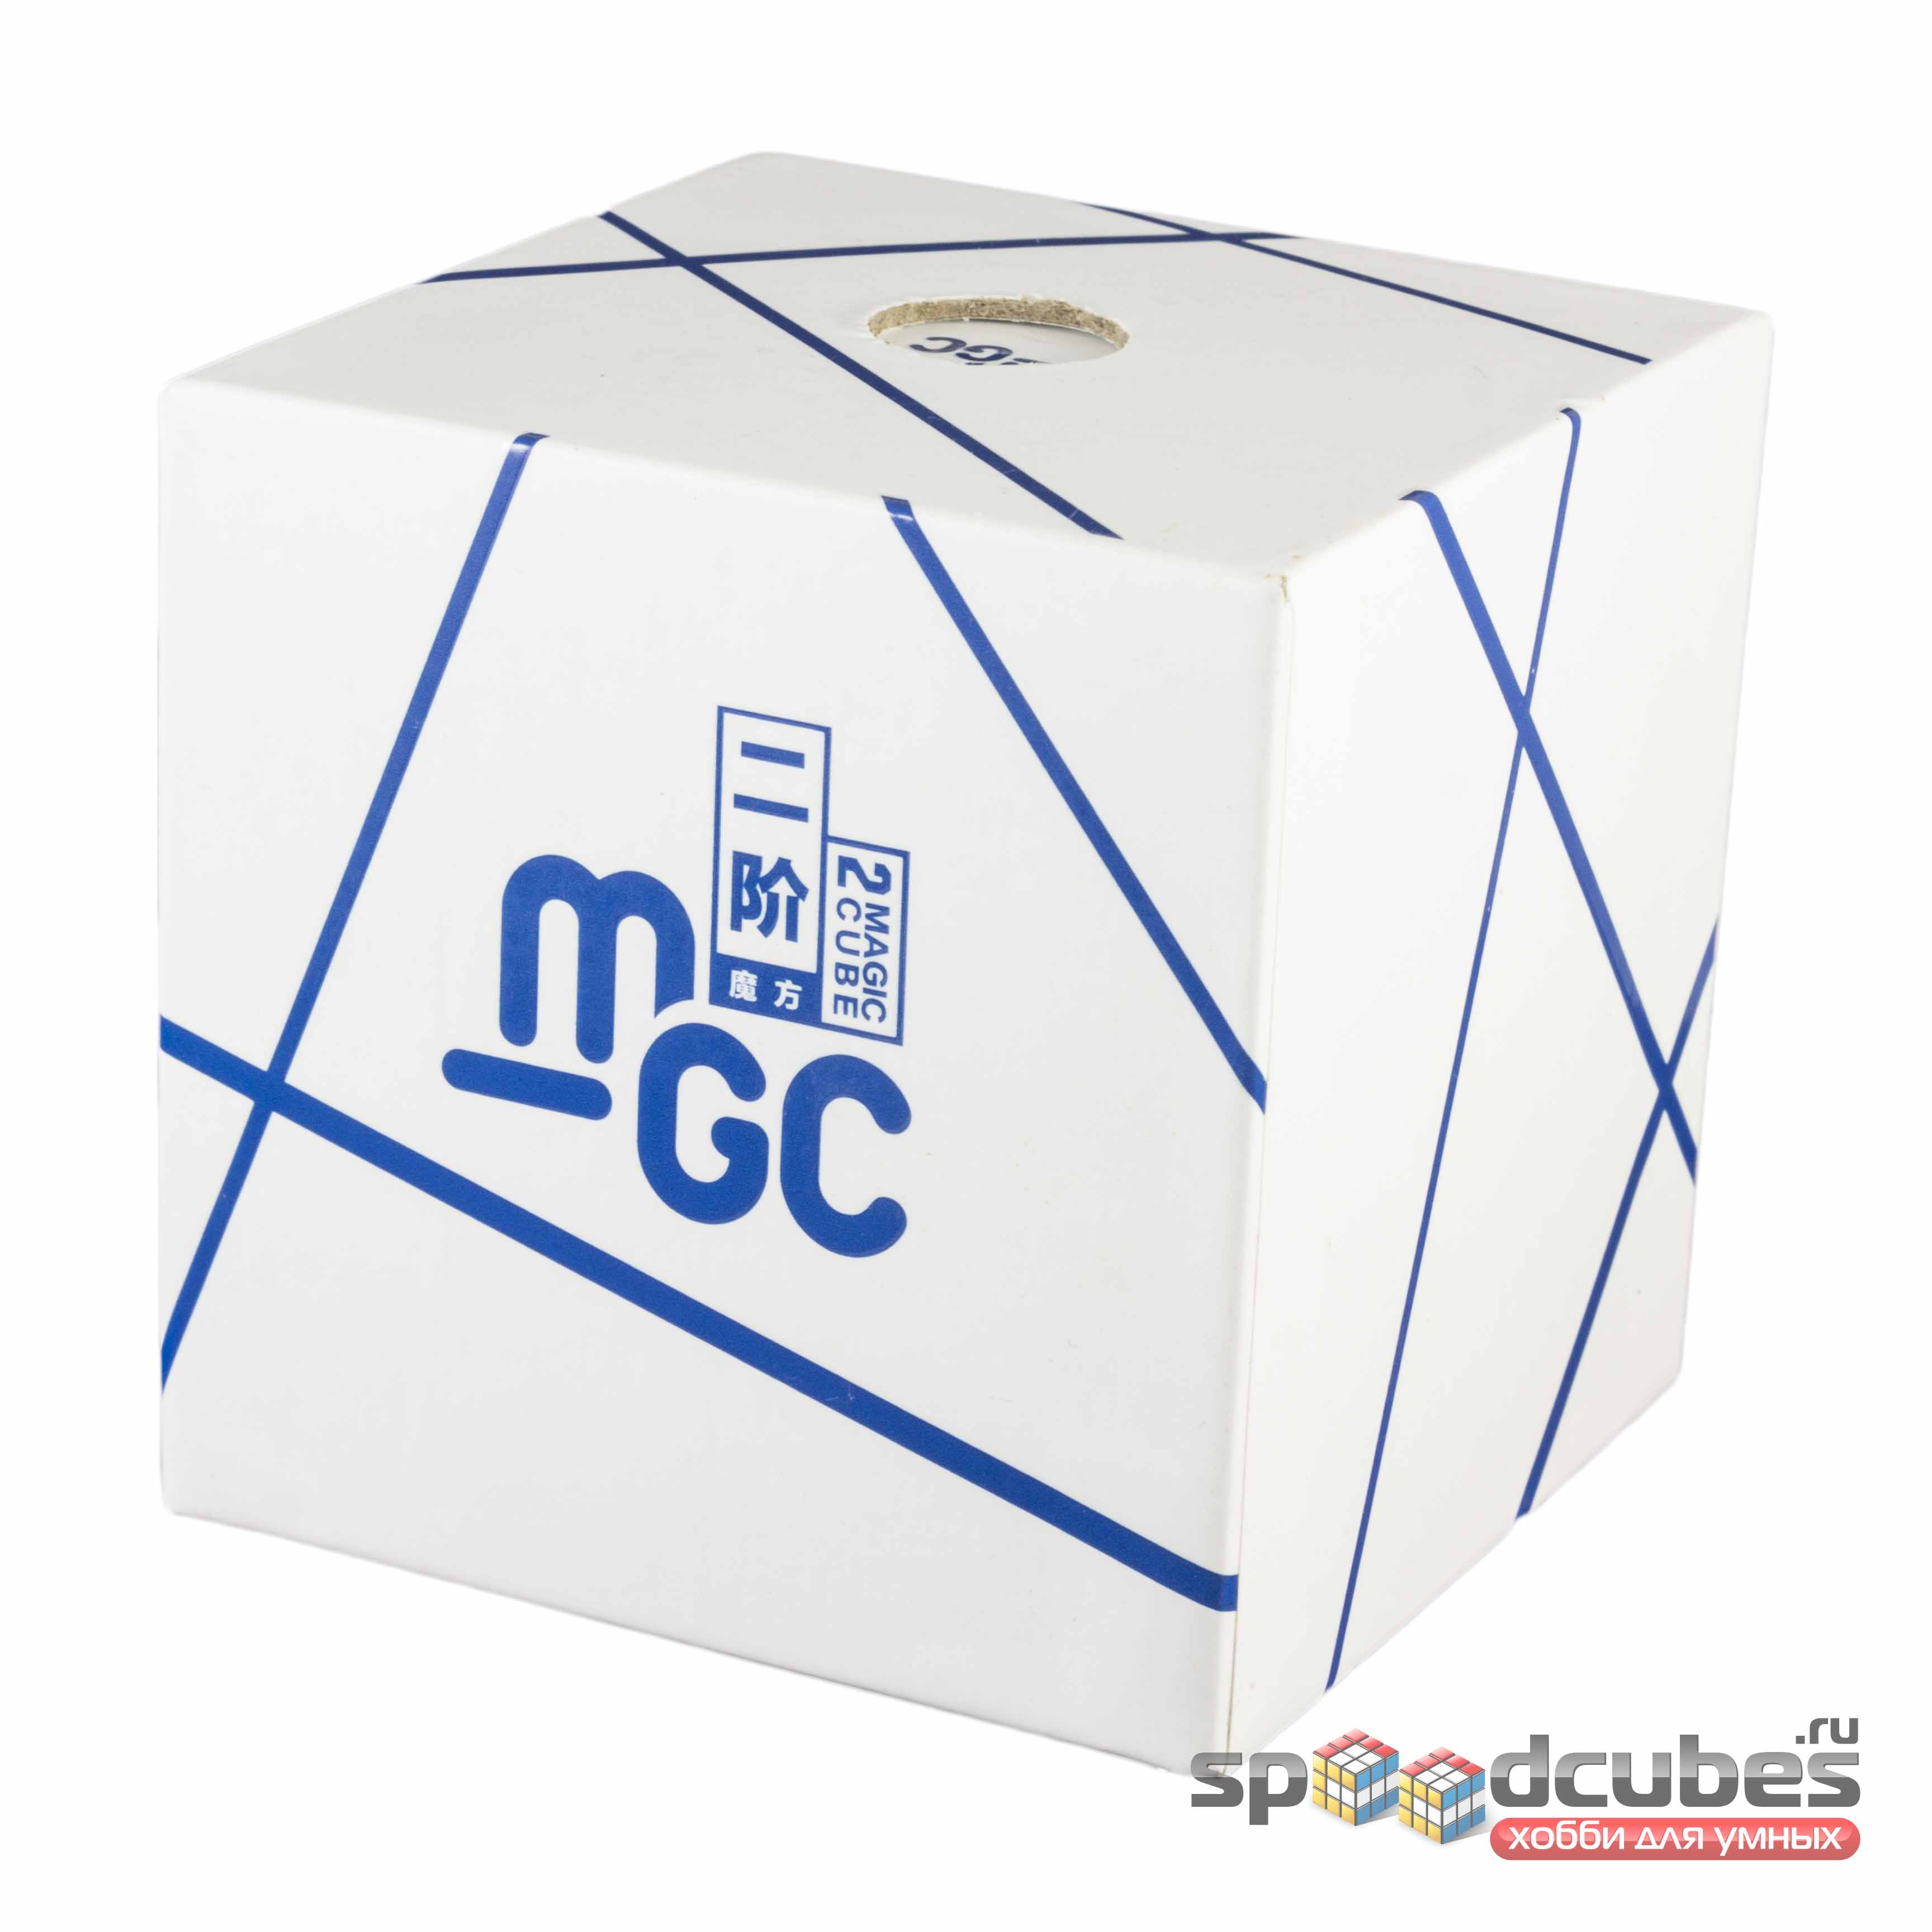 YJ 2x2x2 MGC Magnetic Color 1